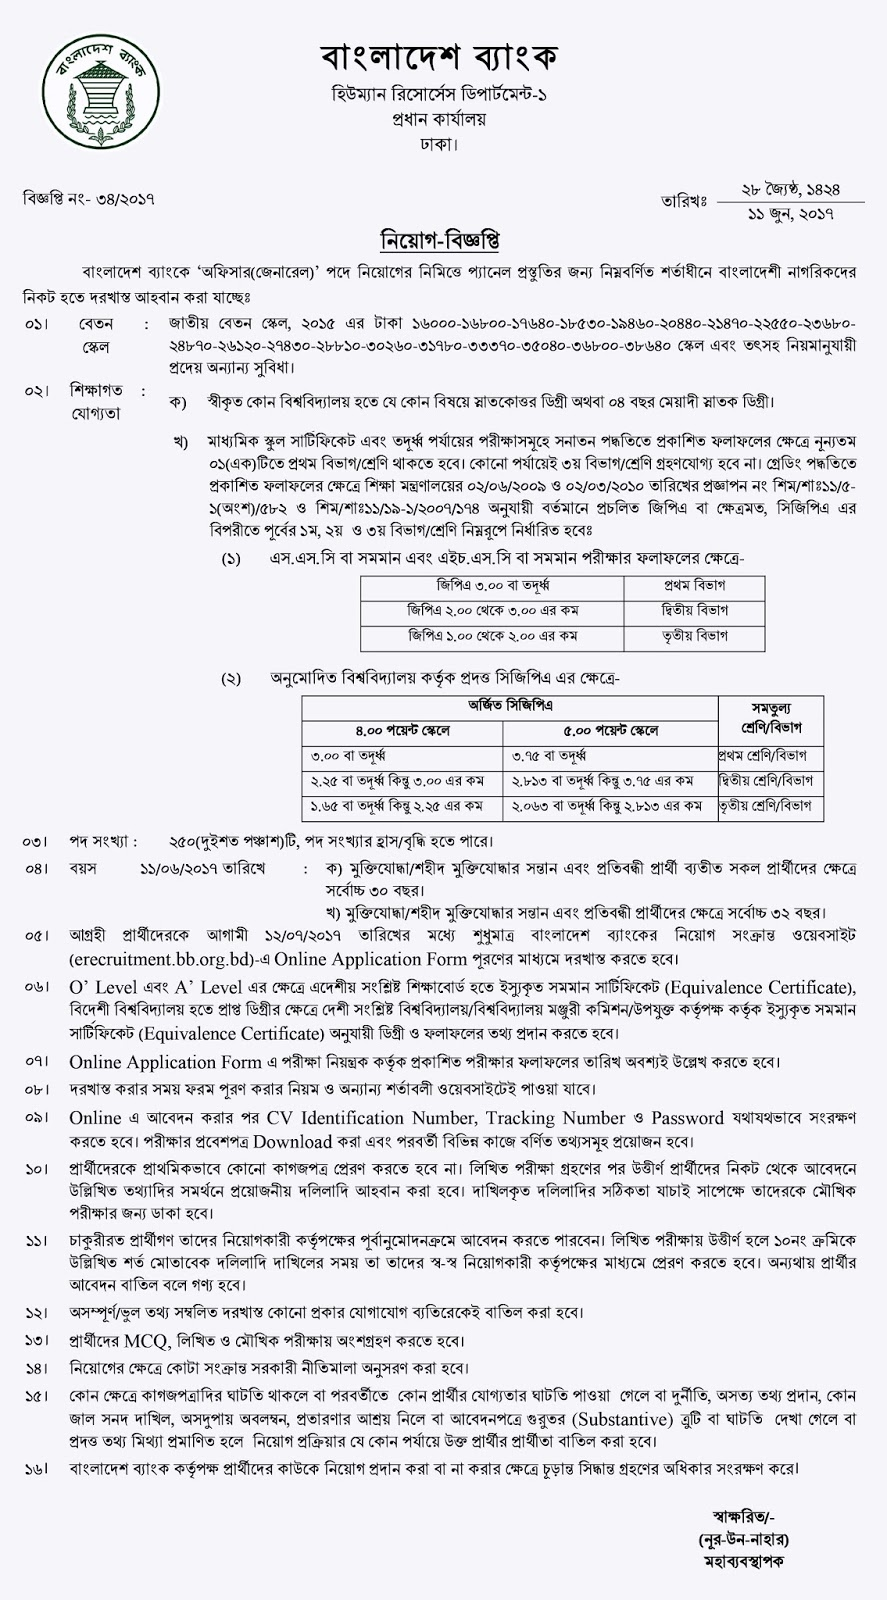 Bangladesh Bank Job circular 2017 apply online